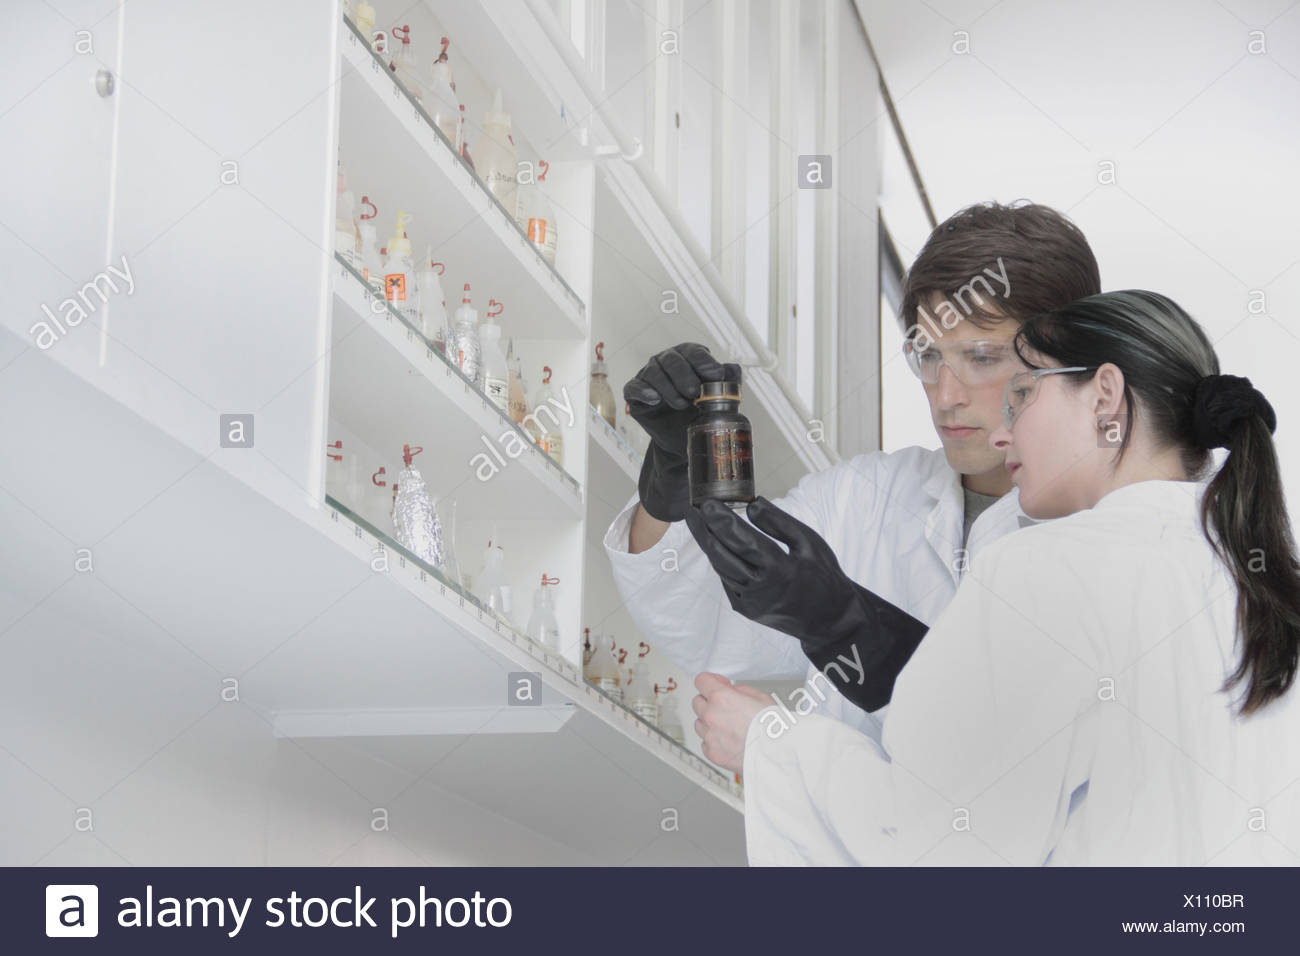 Chemistry students looking at container in lab - Stock Image